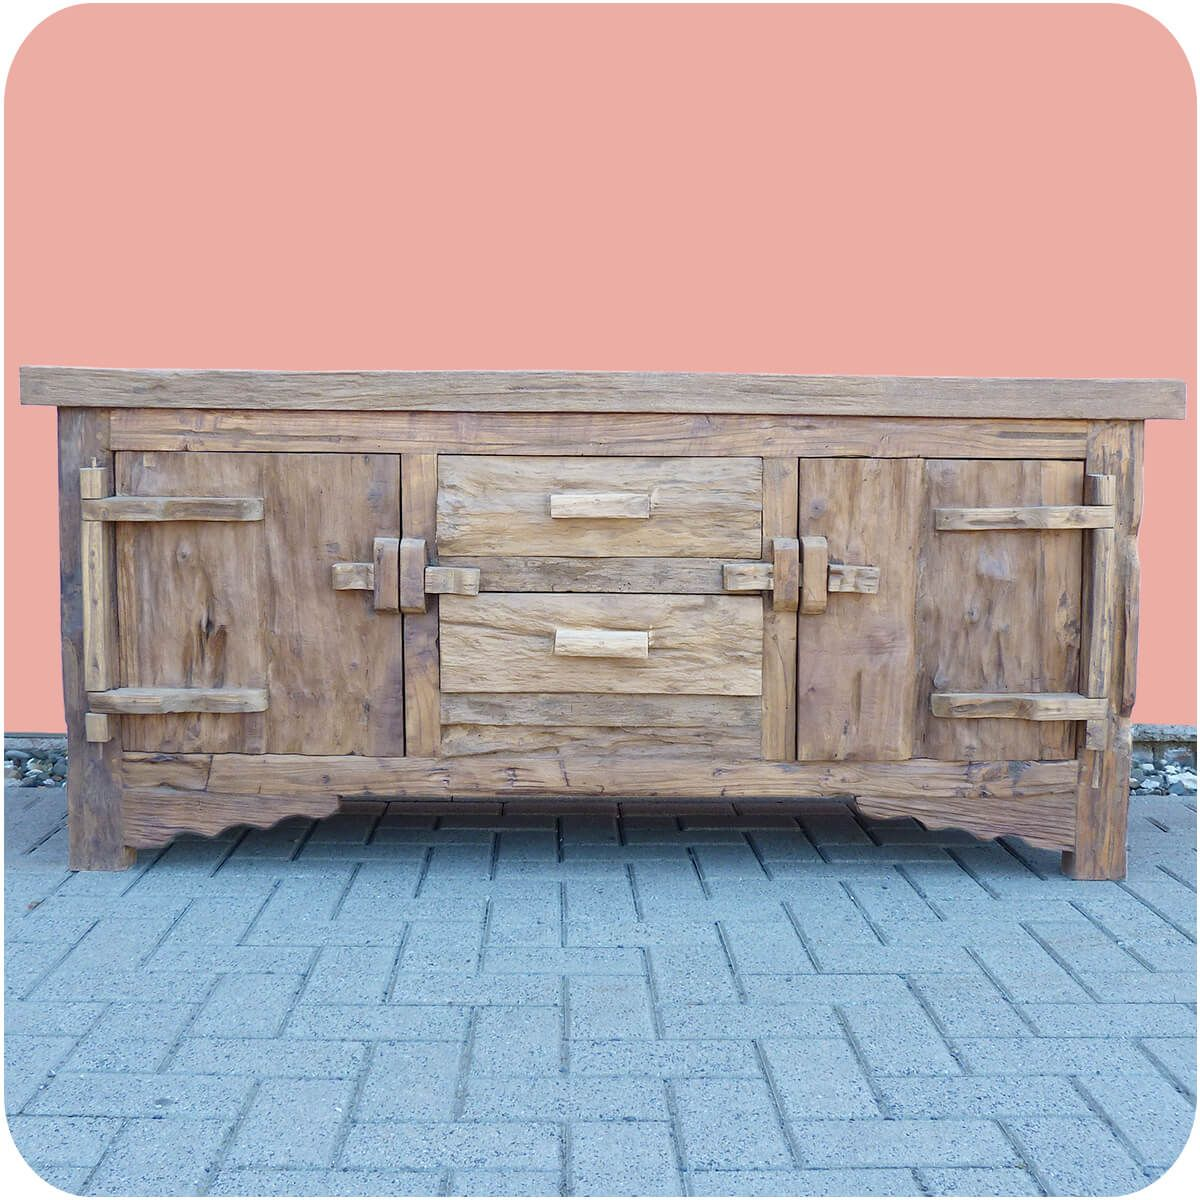 altholz kommode lombok vintage massiv teakholz m bel handarbeit antik 1 ebay. Black Bedroom Furniture Sets. Home Design Ideas